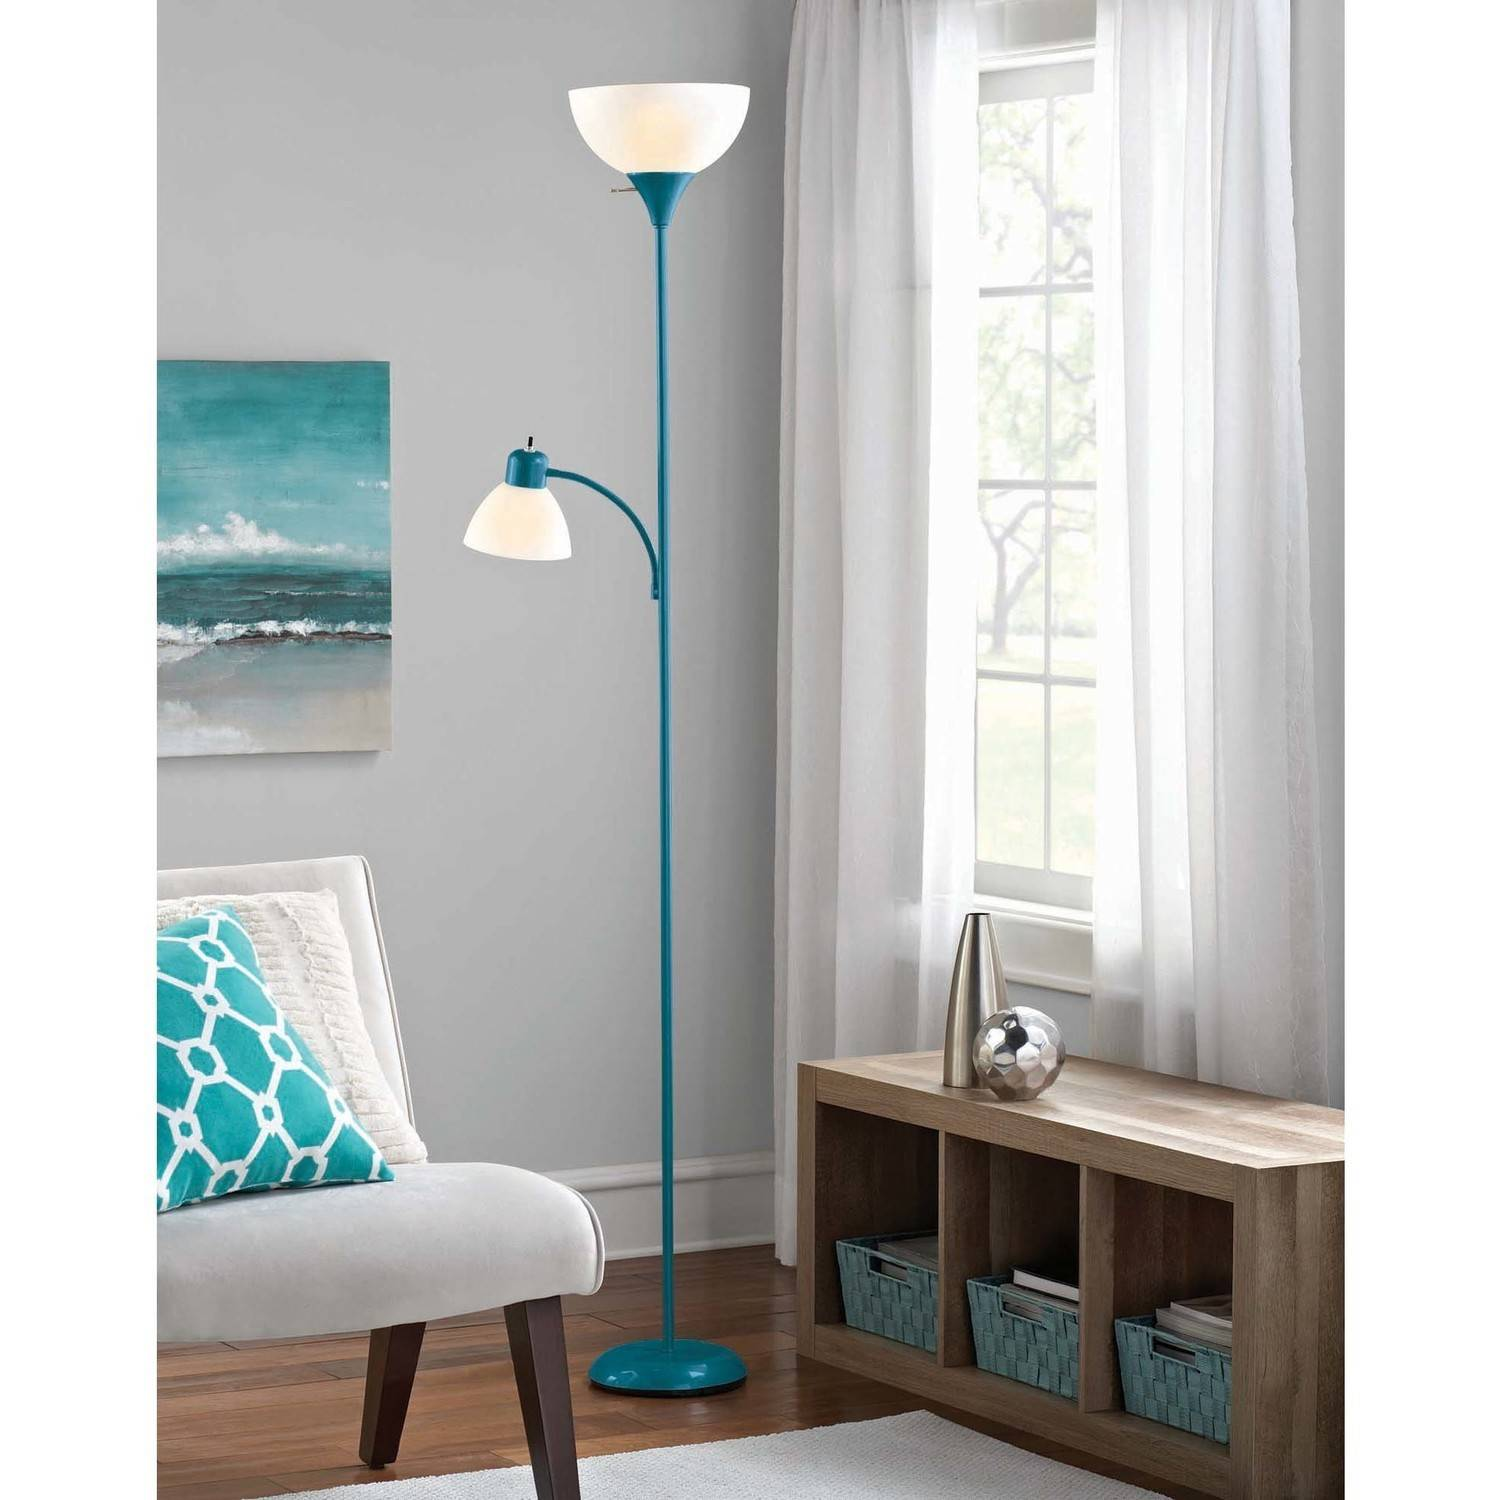 Adesso 6' Floor Lamp with Reading Light by Generic